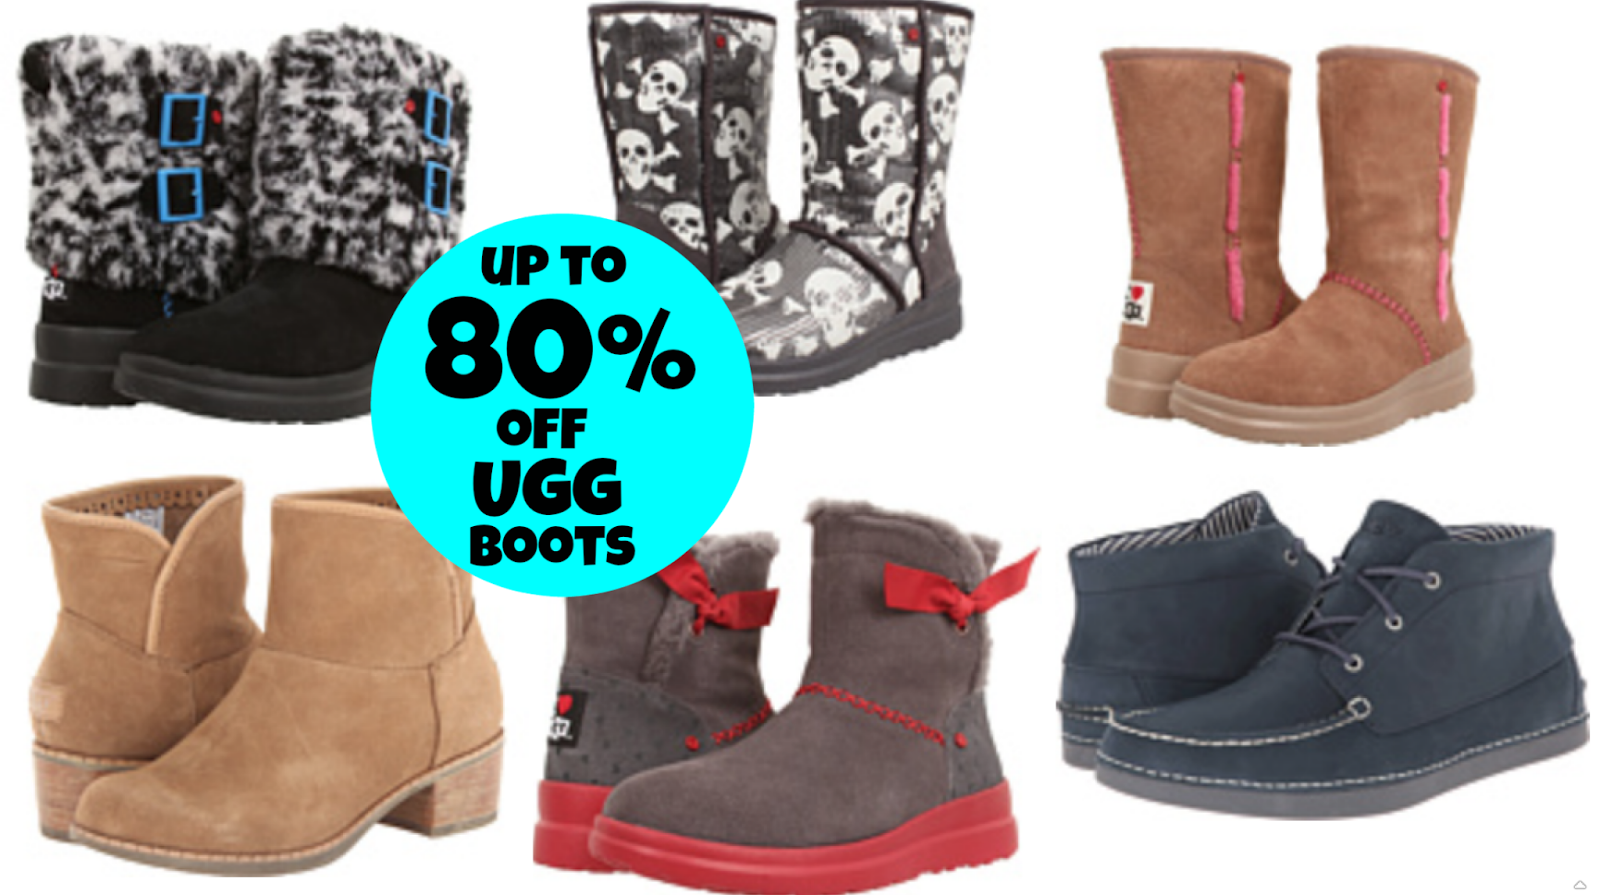 http://www.thebinderladies.com/2015/02/6pm-up-to-80-off-ugg-boots-free.html